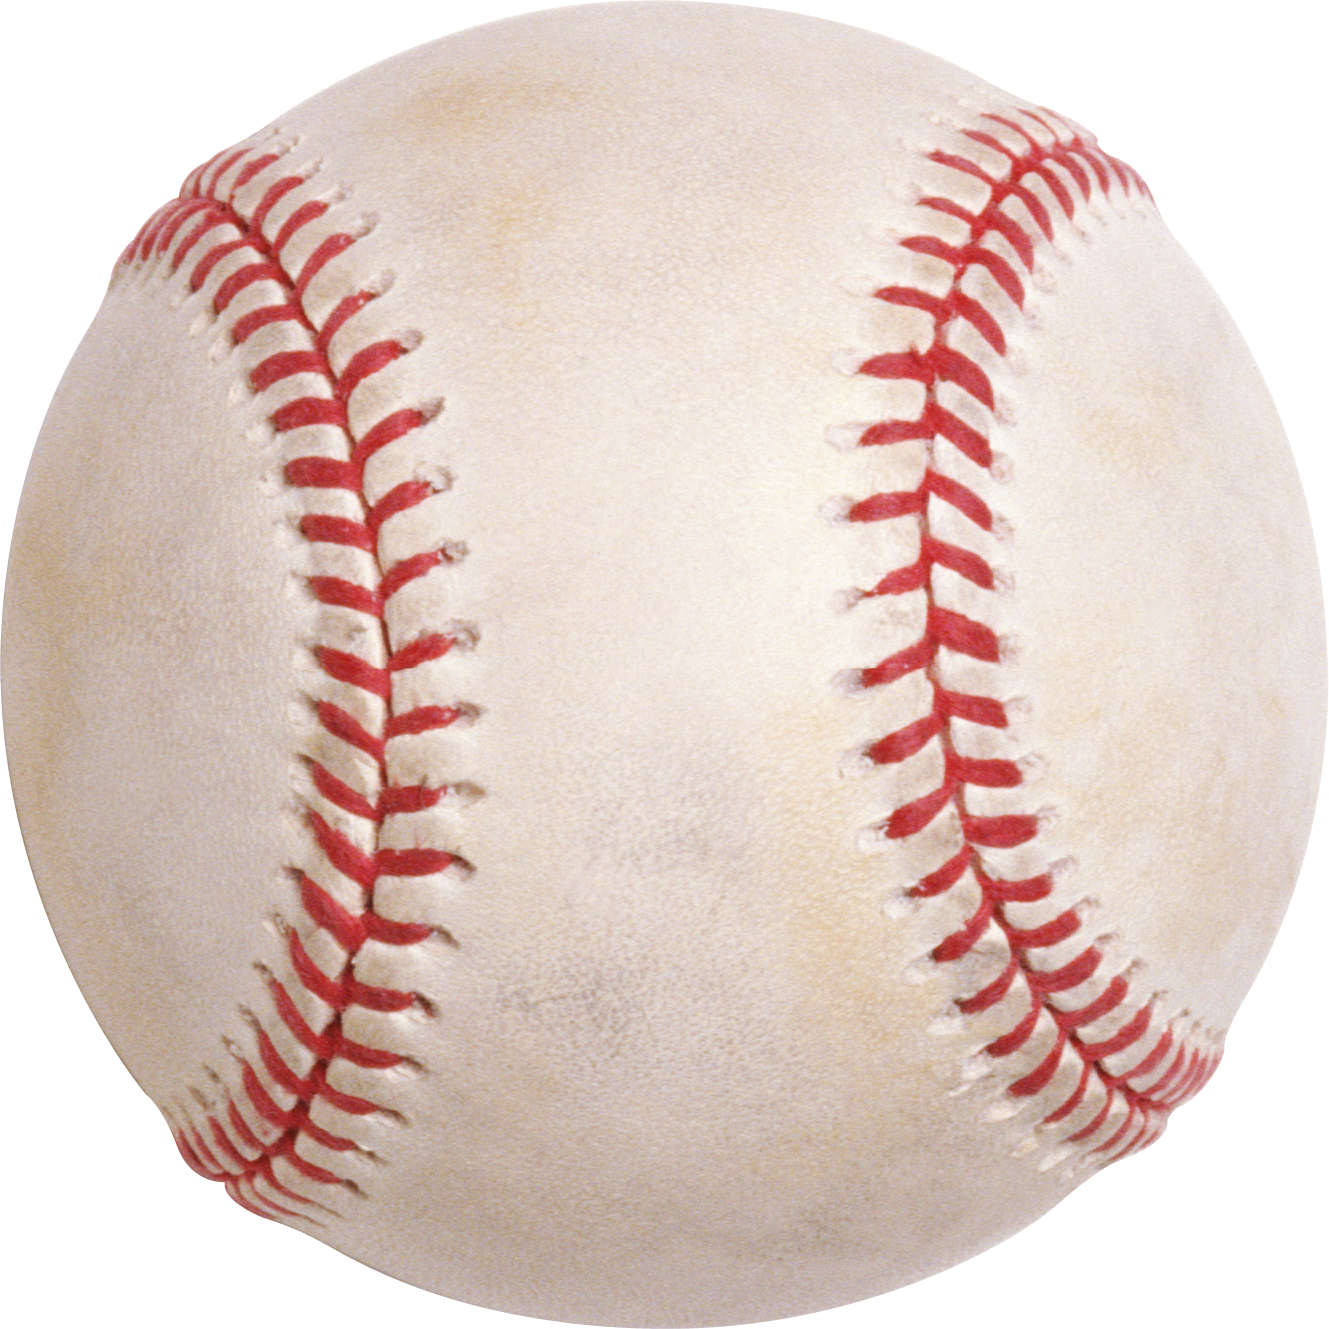 Baseball Fathers Ball Father Day Free Transparent Image HD PNG Image